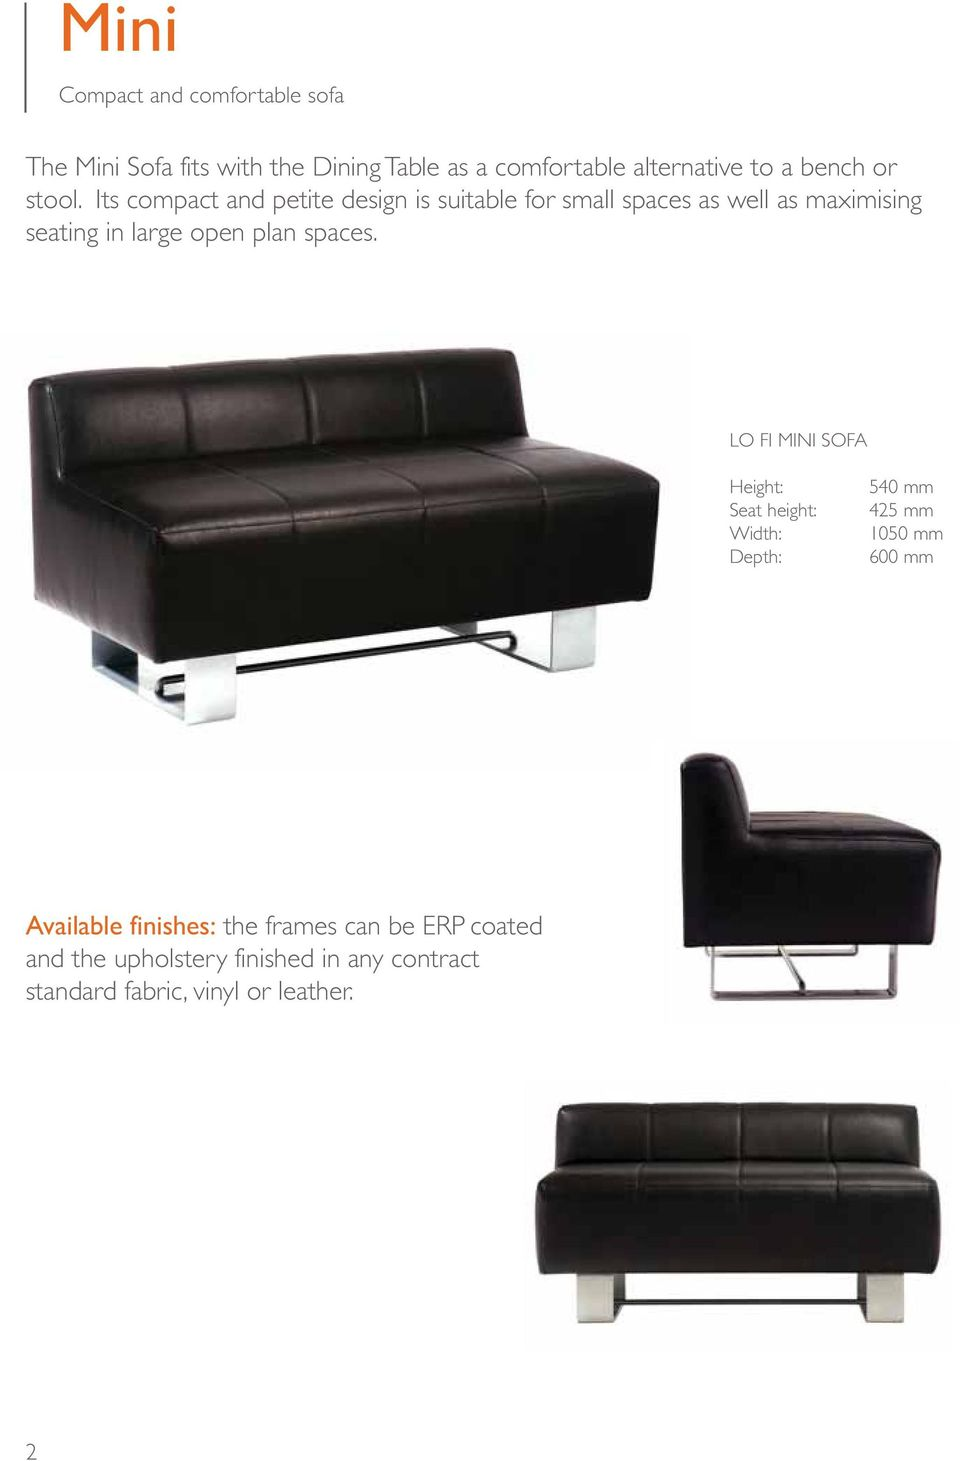 Its compact and petite design is suitable for small spaces as well as maximising seating in large open